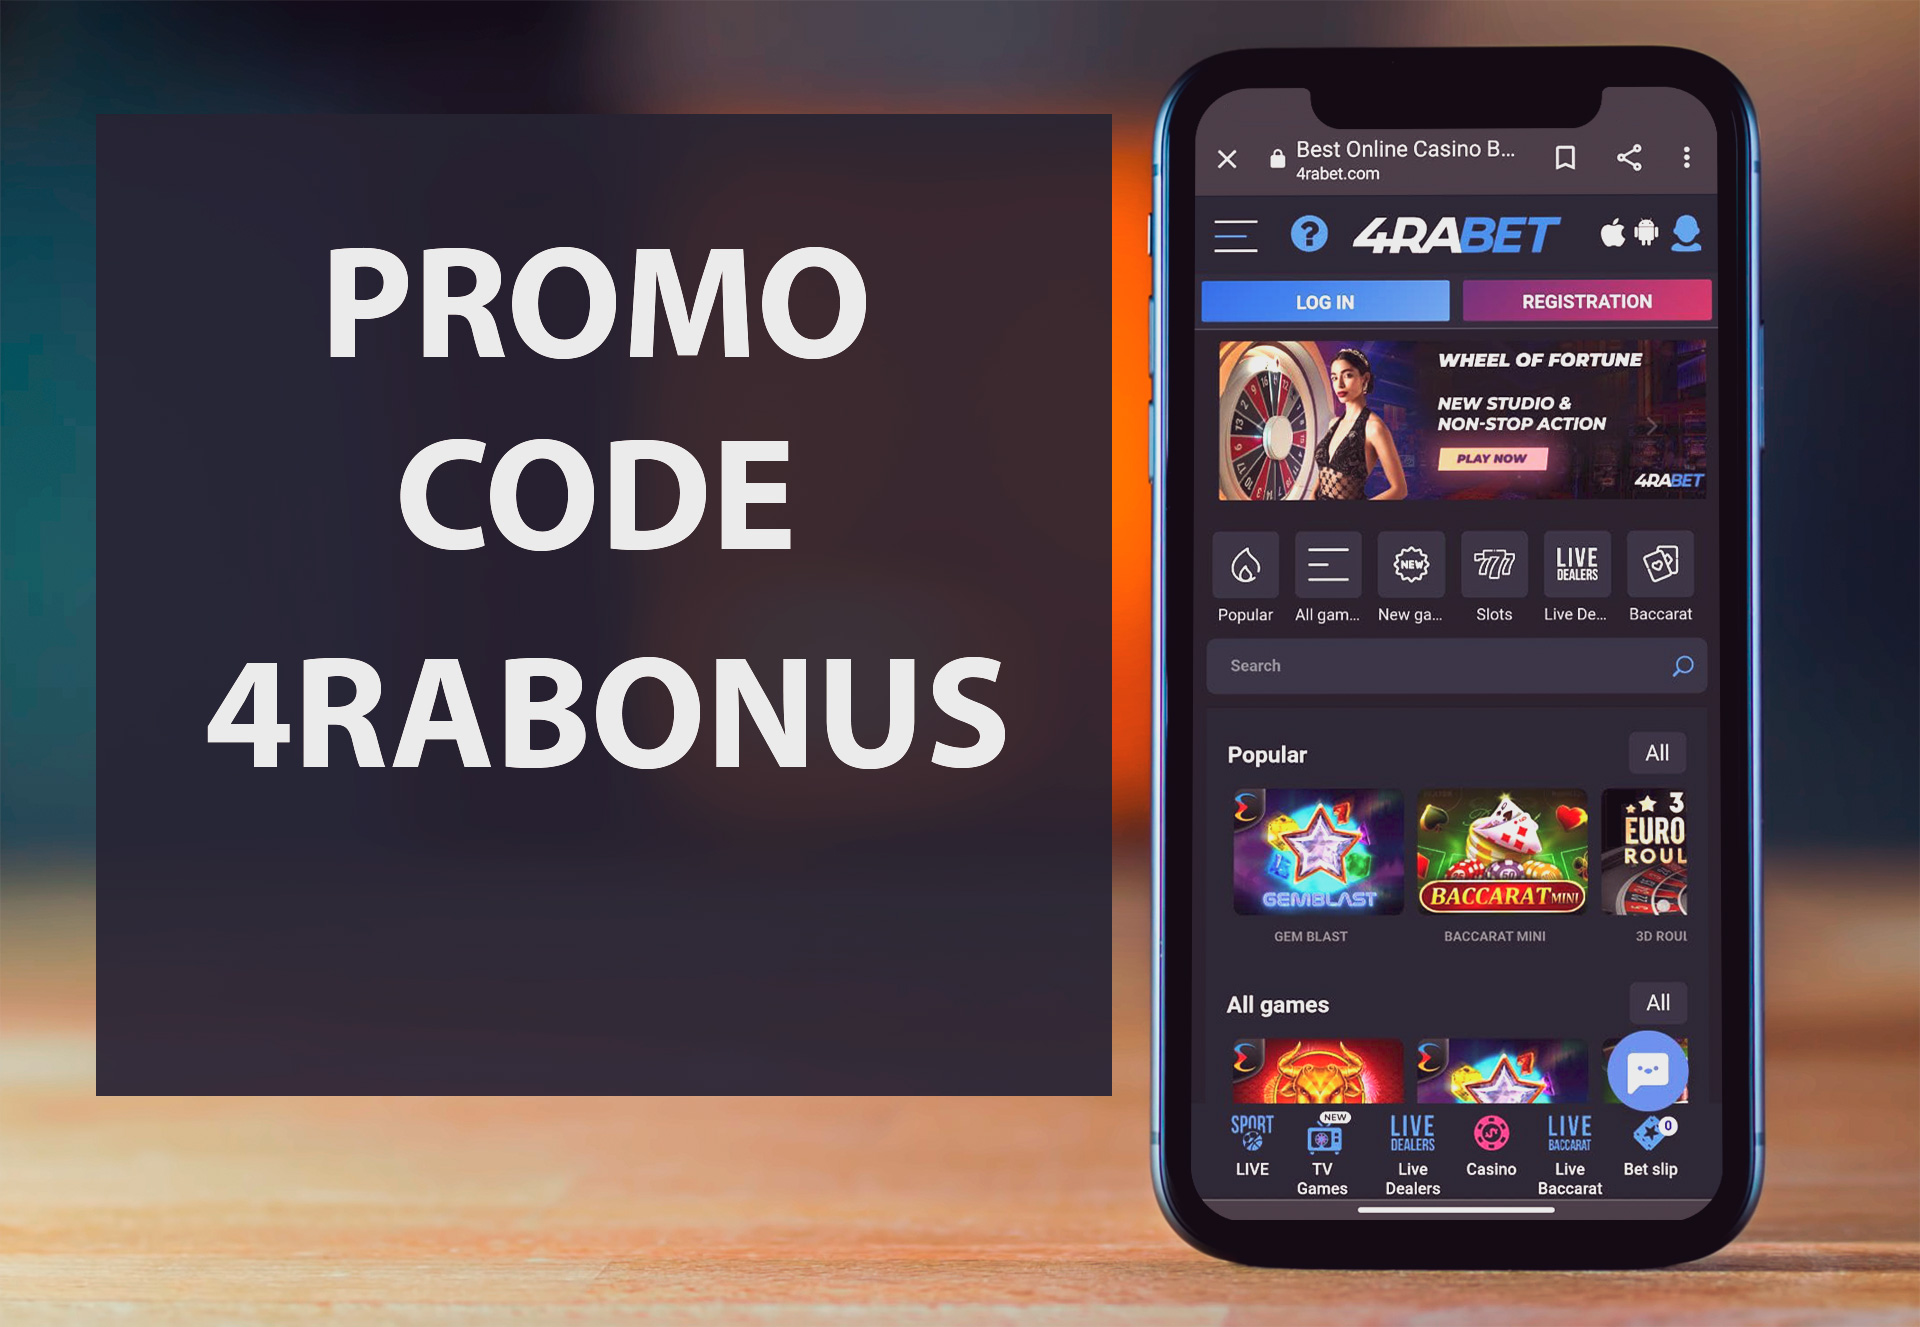 You can spend your bonus money on different casino games at 4rabet.